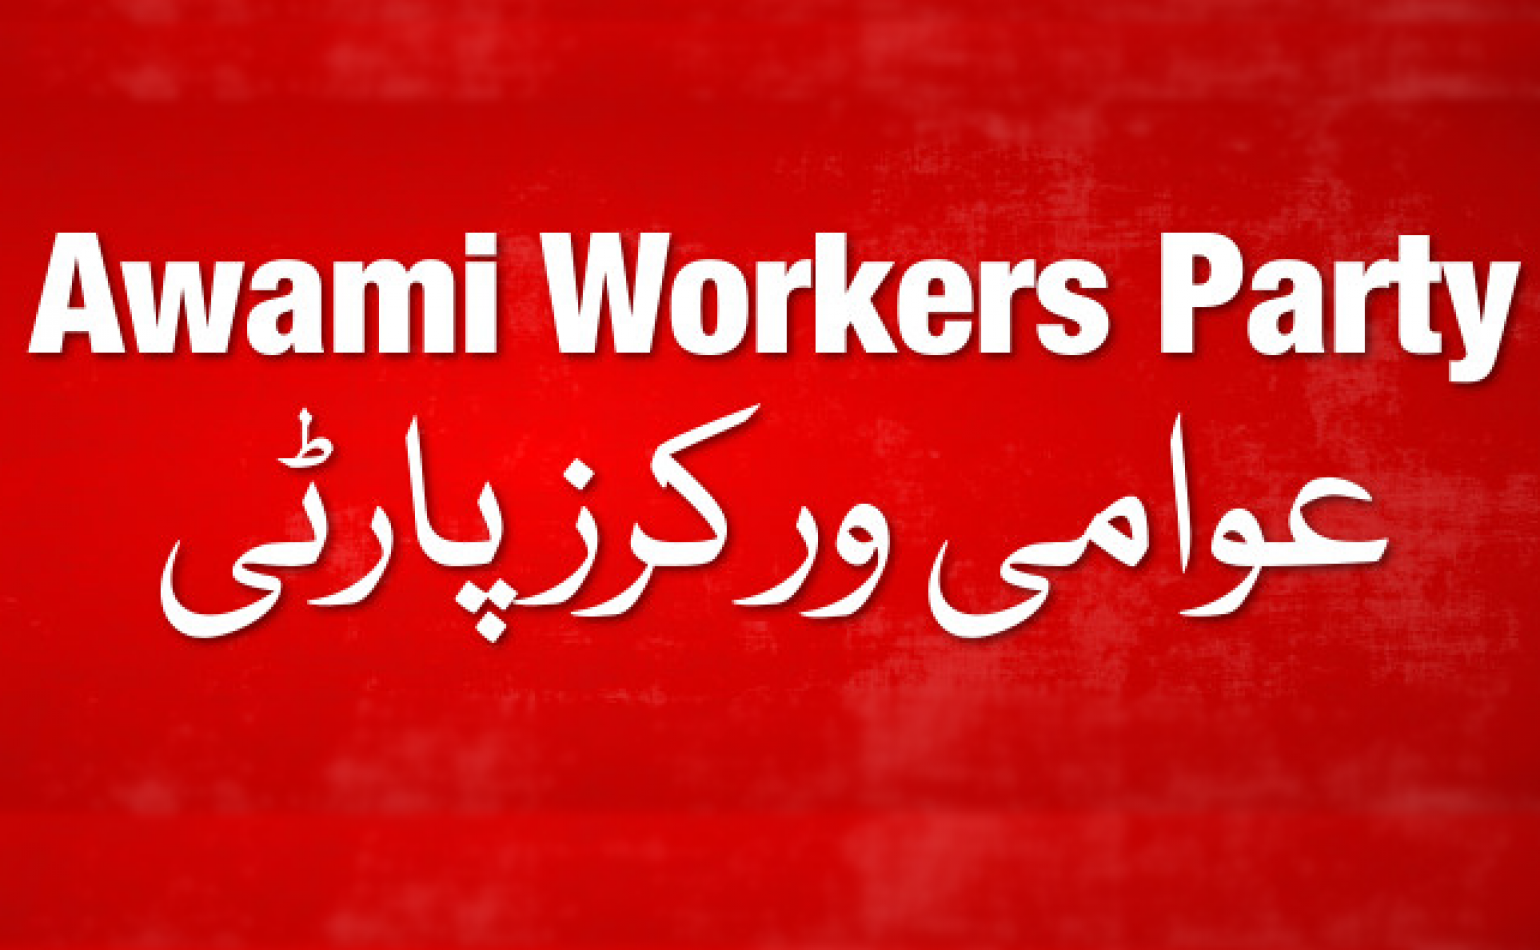 We condemn the blocking of access to the Awami Workers Party's website weeks ahead of General Elections 2018, and call upon relevant authorities including the Election Commission of Pakistan to take immediate action